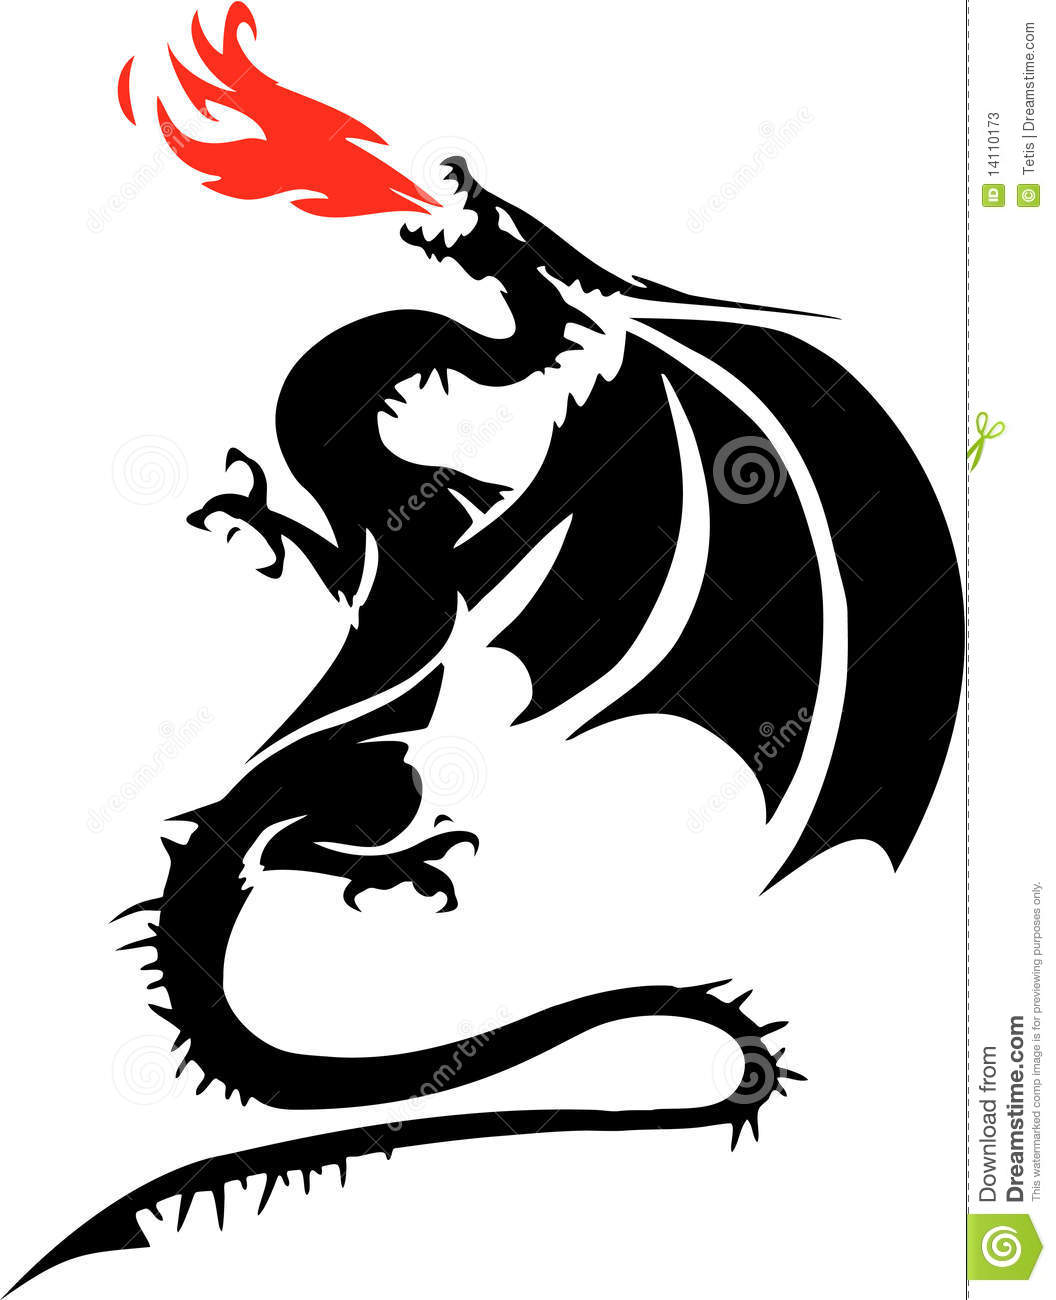 Black And White Drawing Of A Winged Dragon Breathing Red Flames.